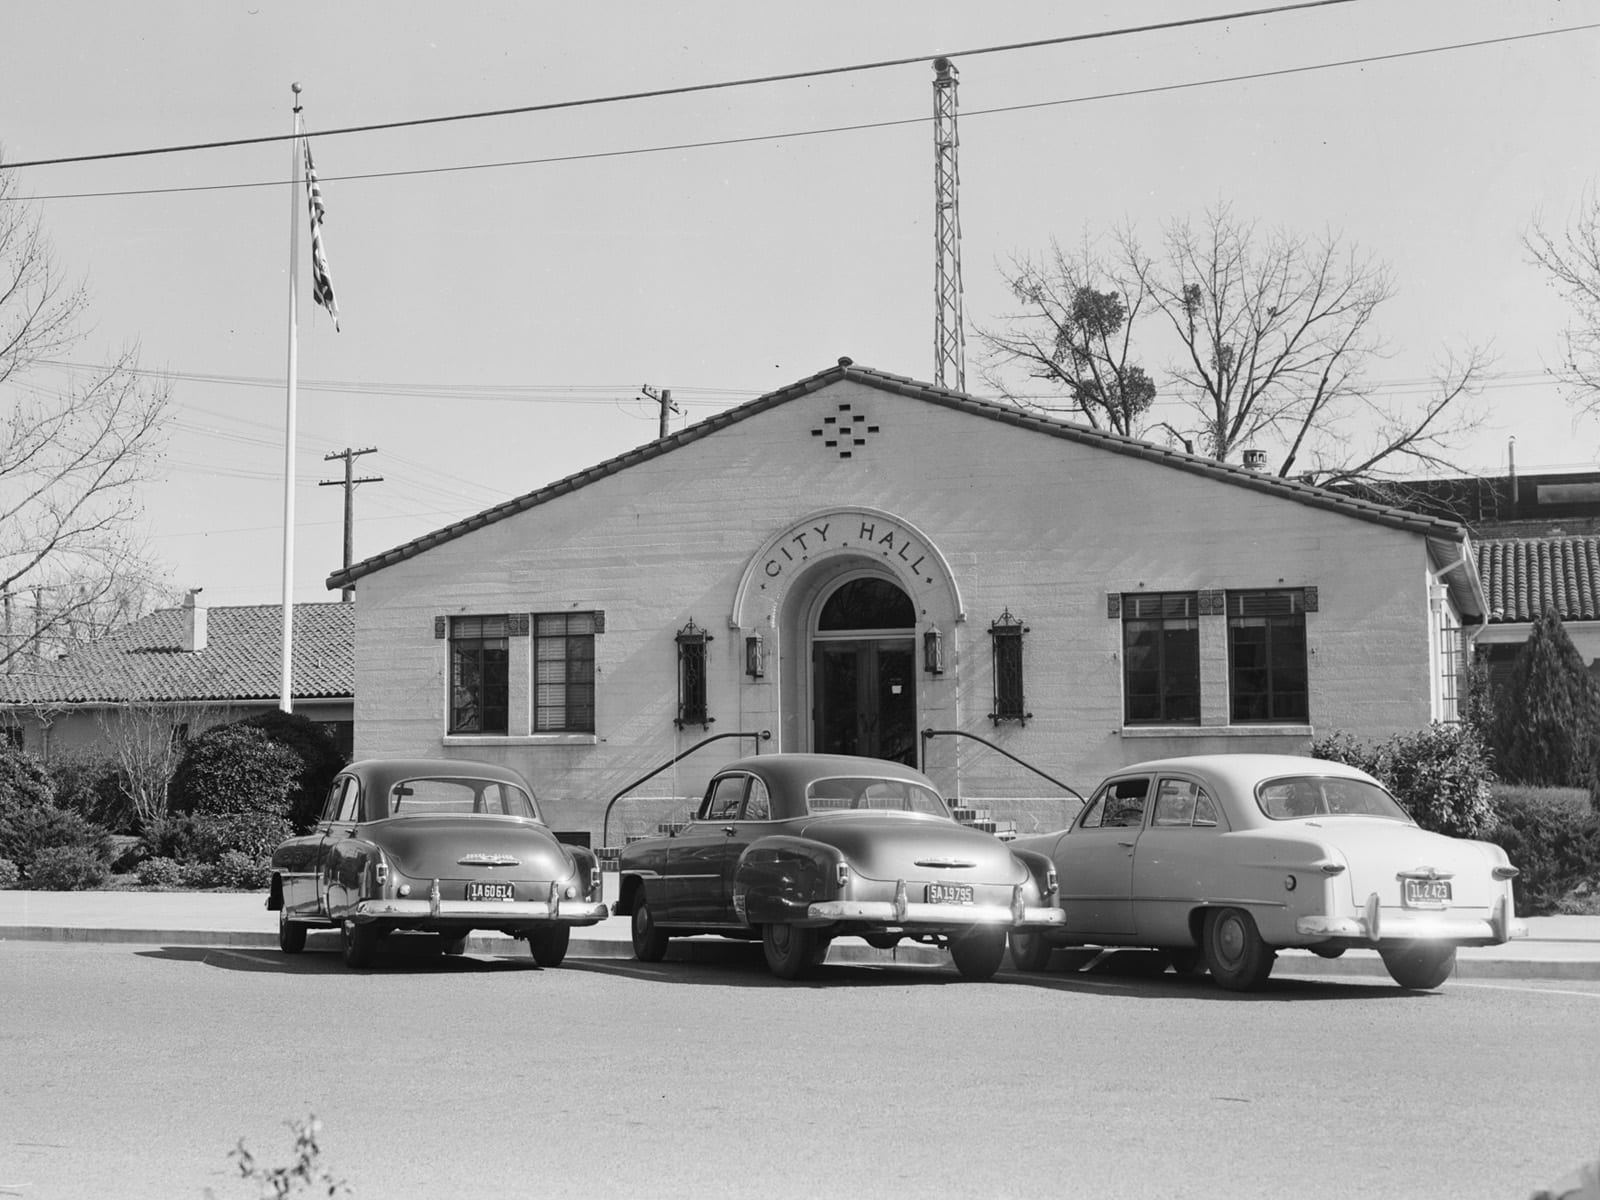 Davis City Hall, 1953. The building is now Bistro 33